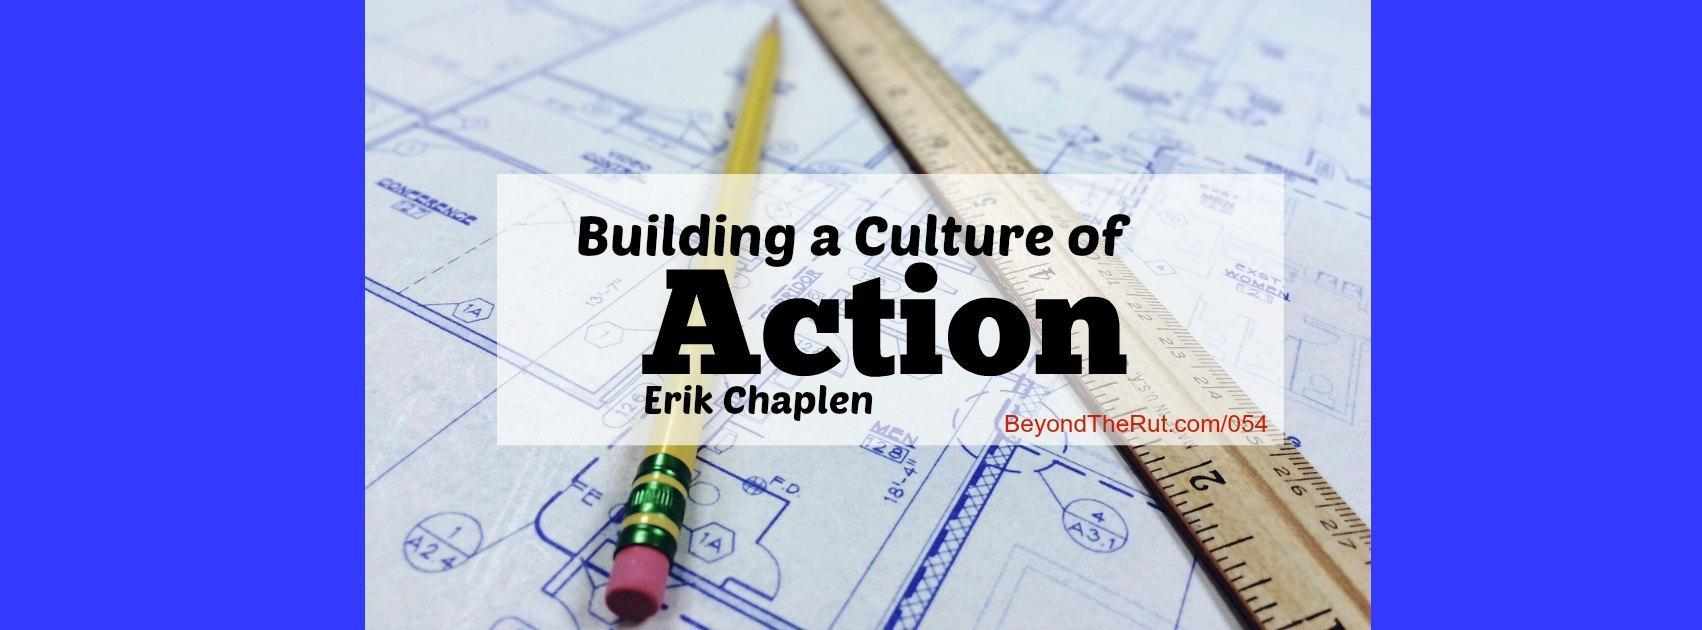 BtR 054 Culture of Action Erik Chaplen